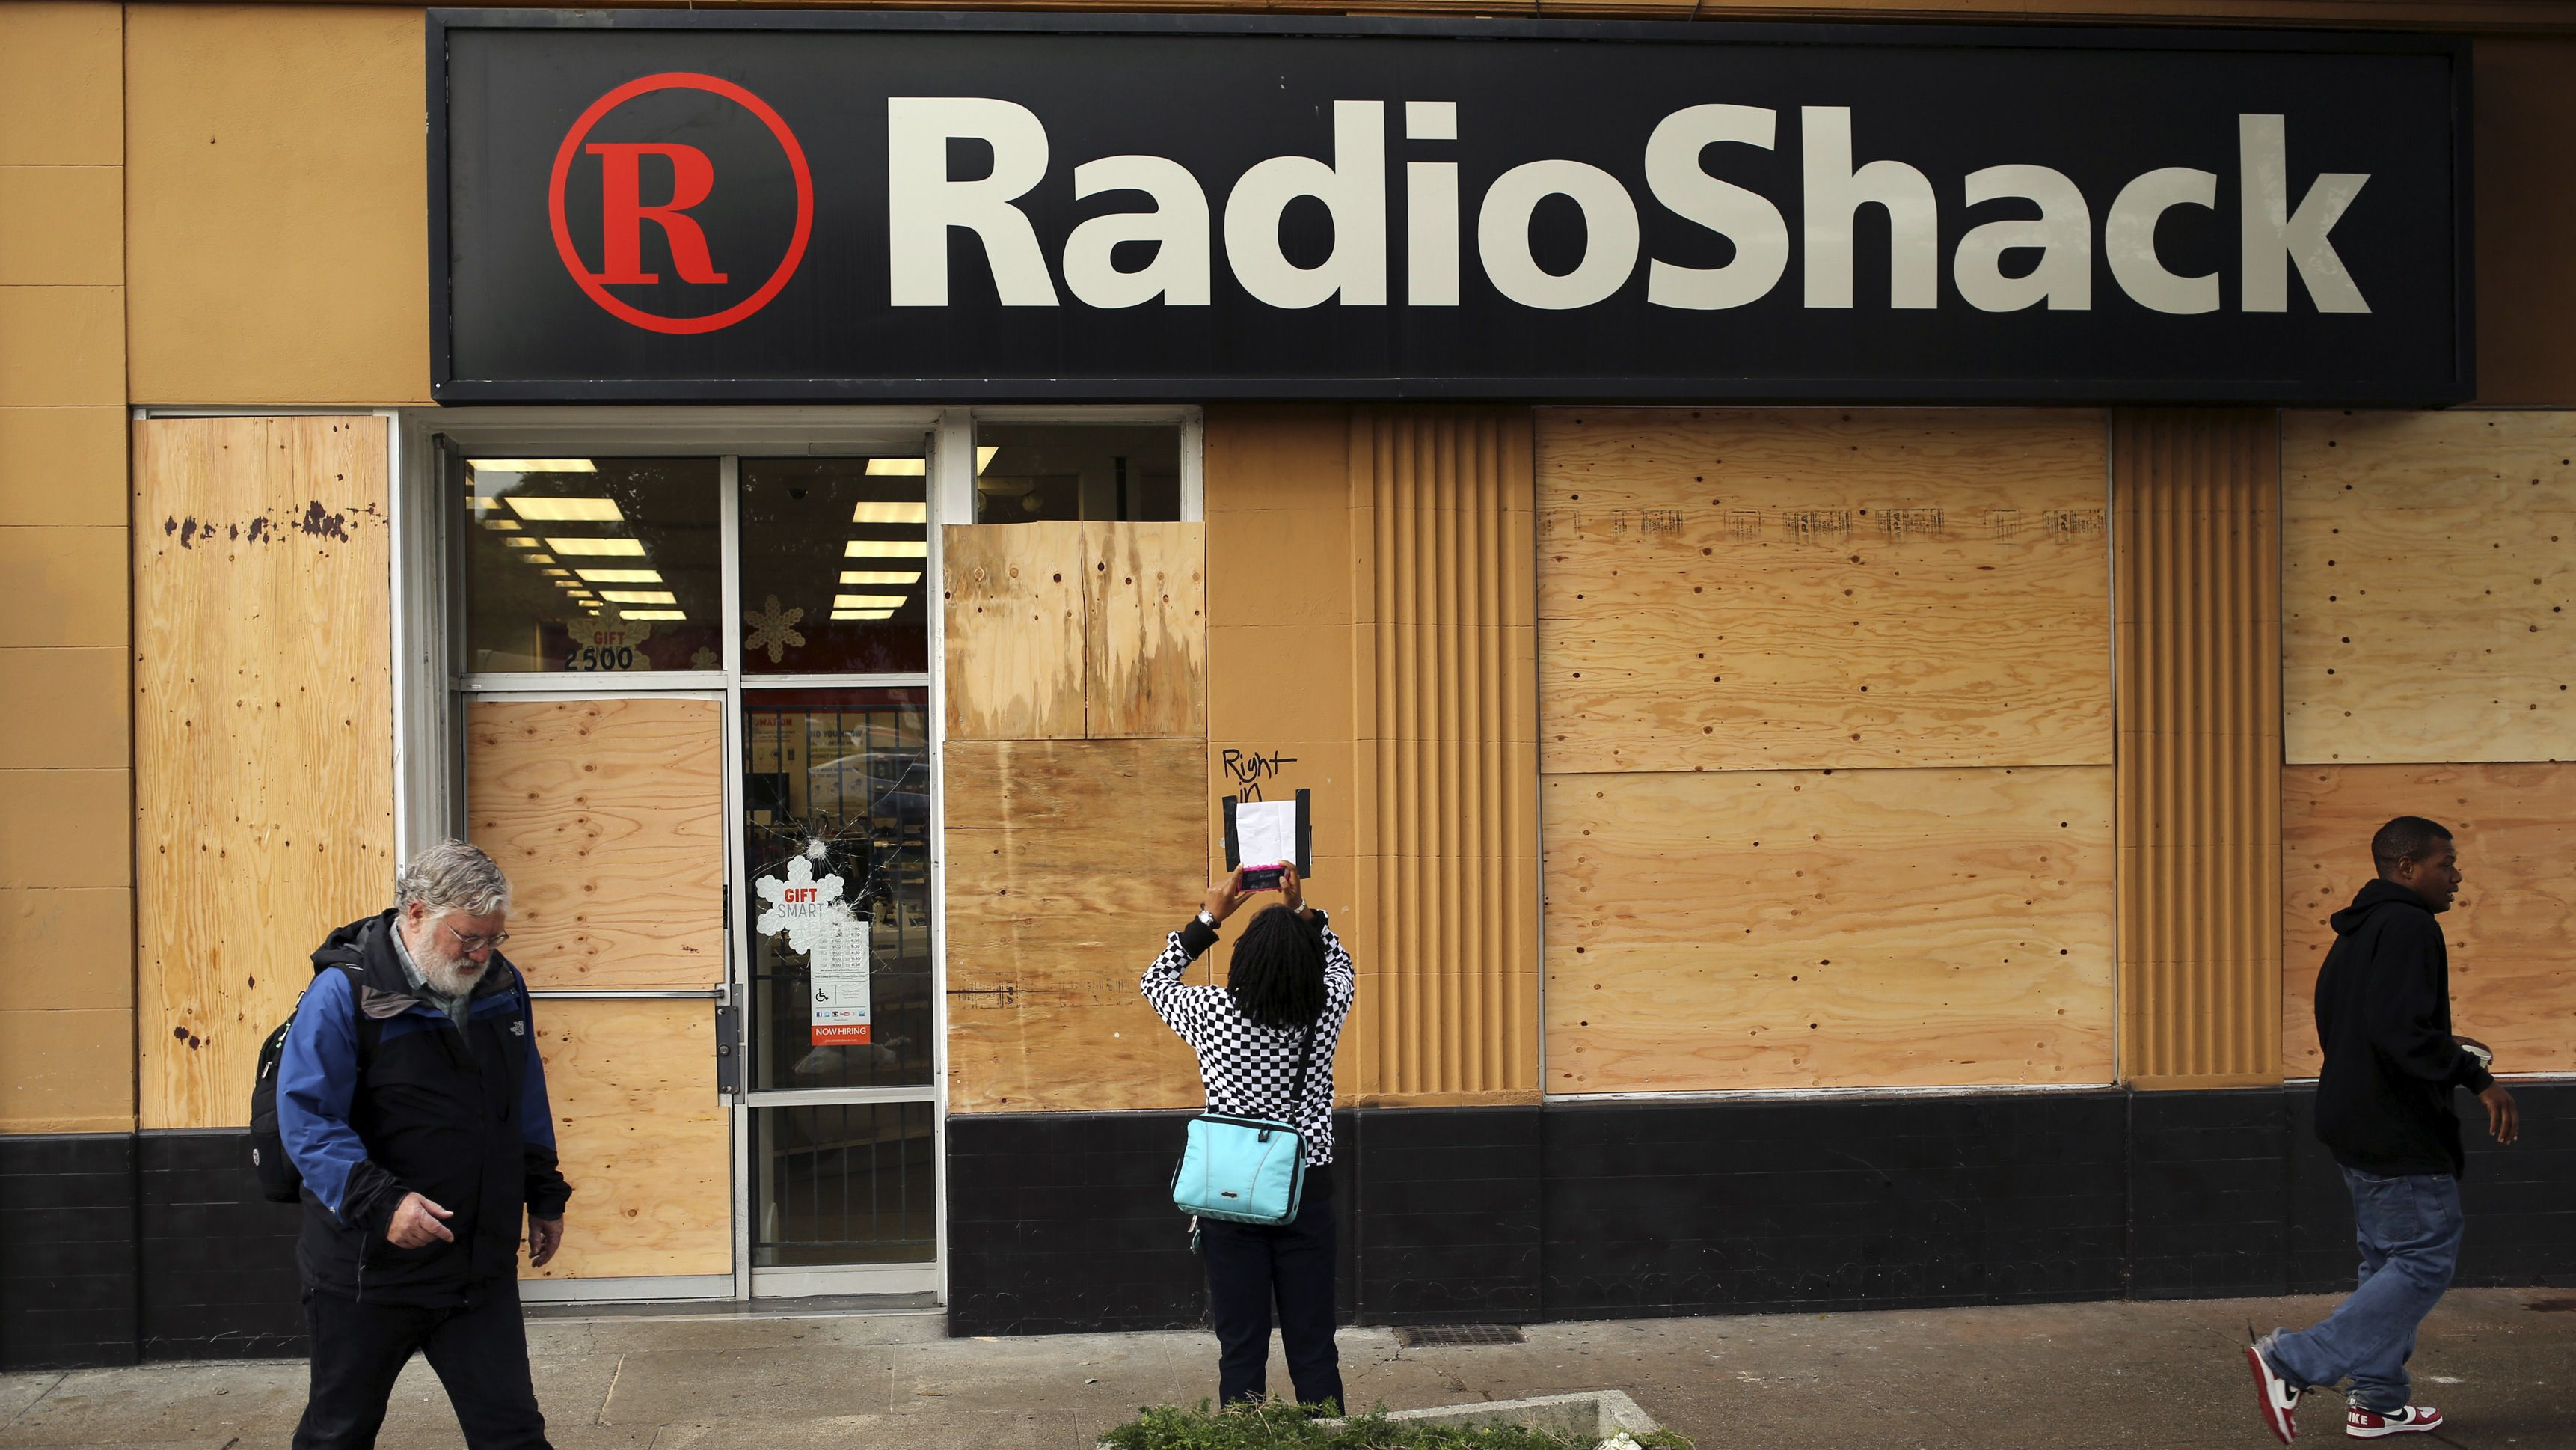 A boarded up Radio Shack retail store along Shattuck Avenue, in Berkeley